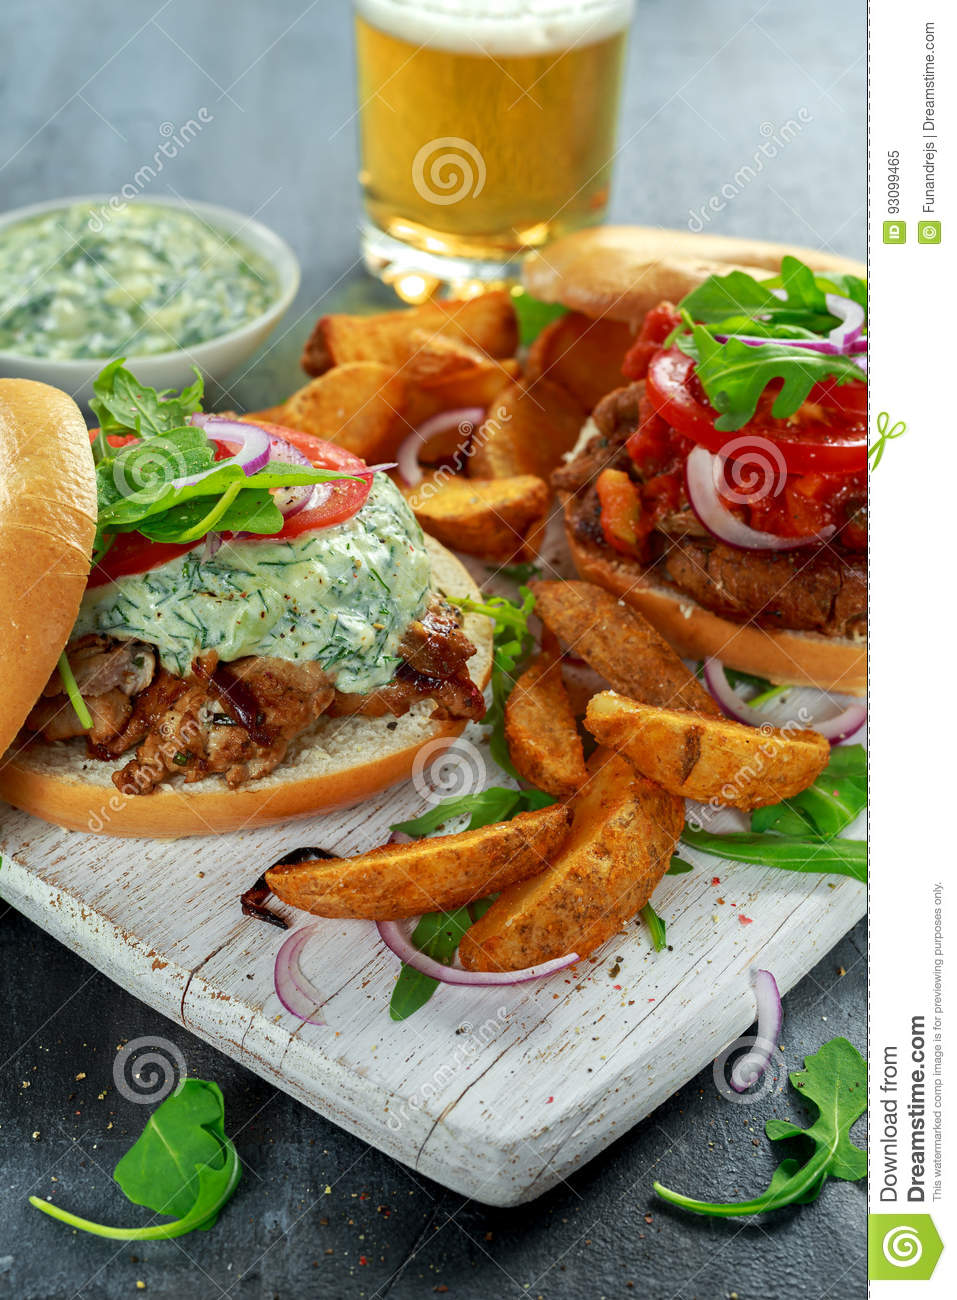 Delicious Bagel Pork sandwiches with vegetable and Tzatziki Sauce and Fries on white board.